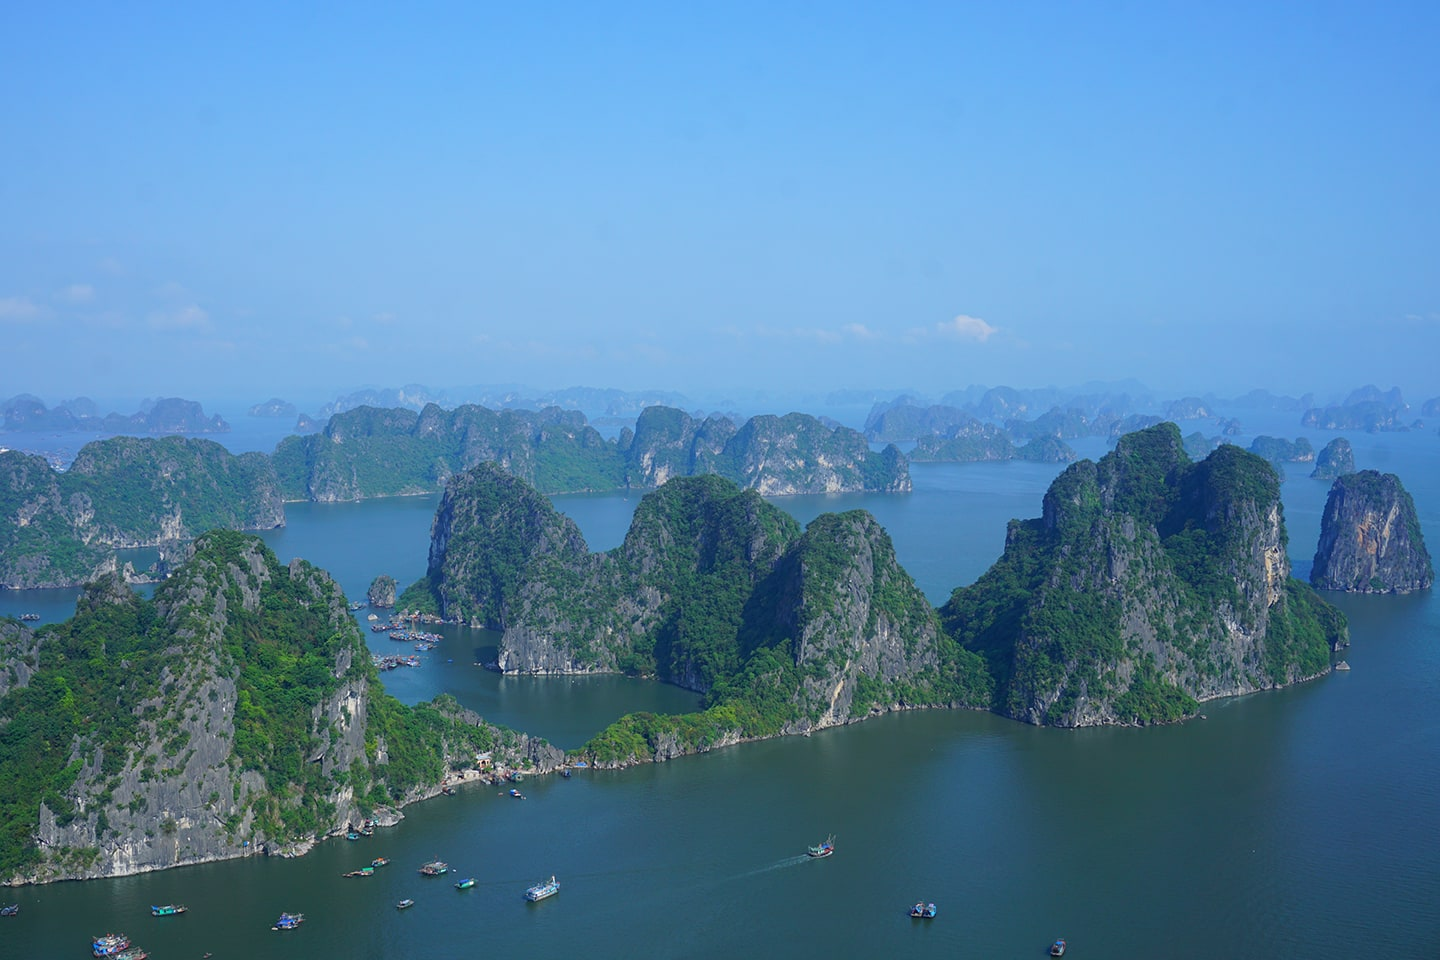 Uitzicht Halong Bay - Bai Tho Mountain